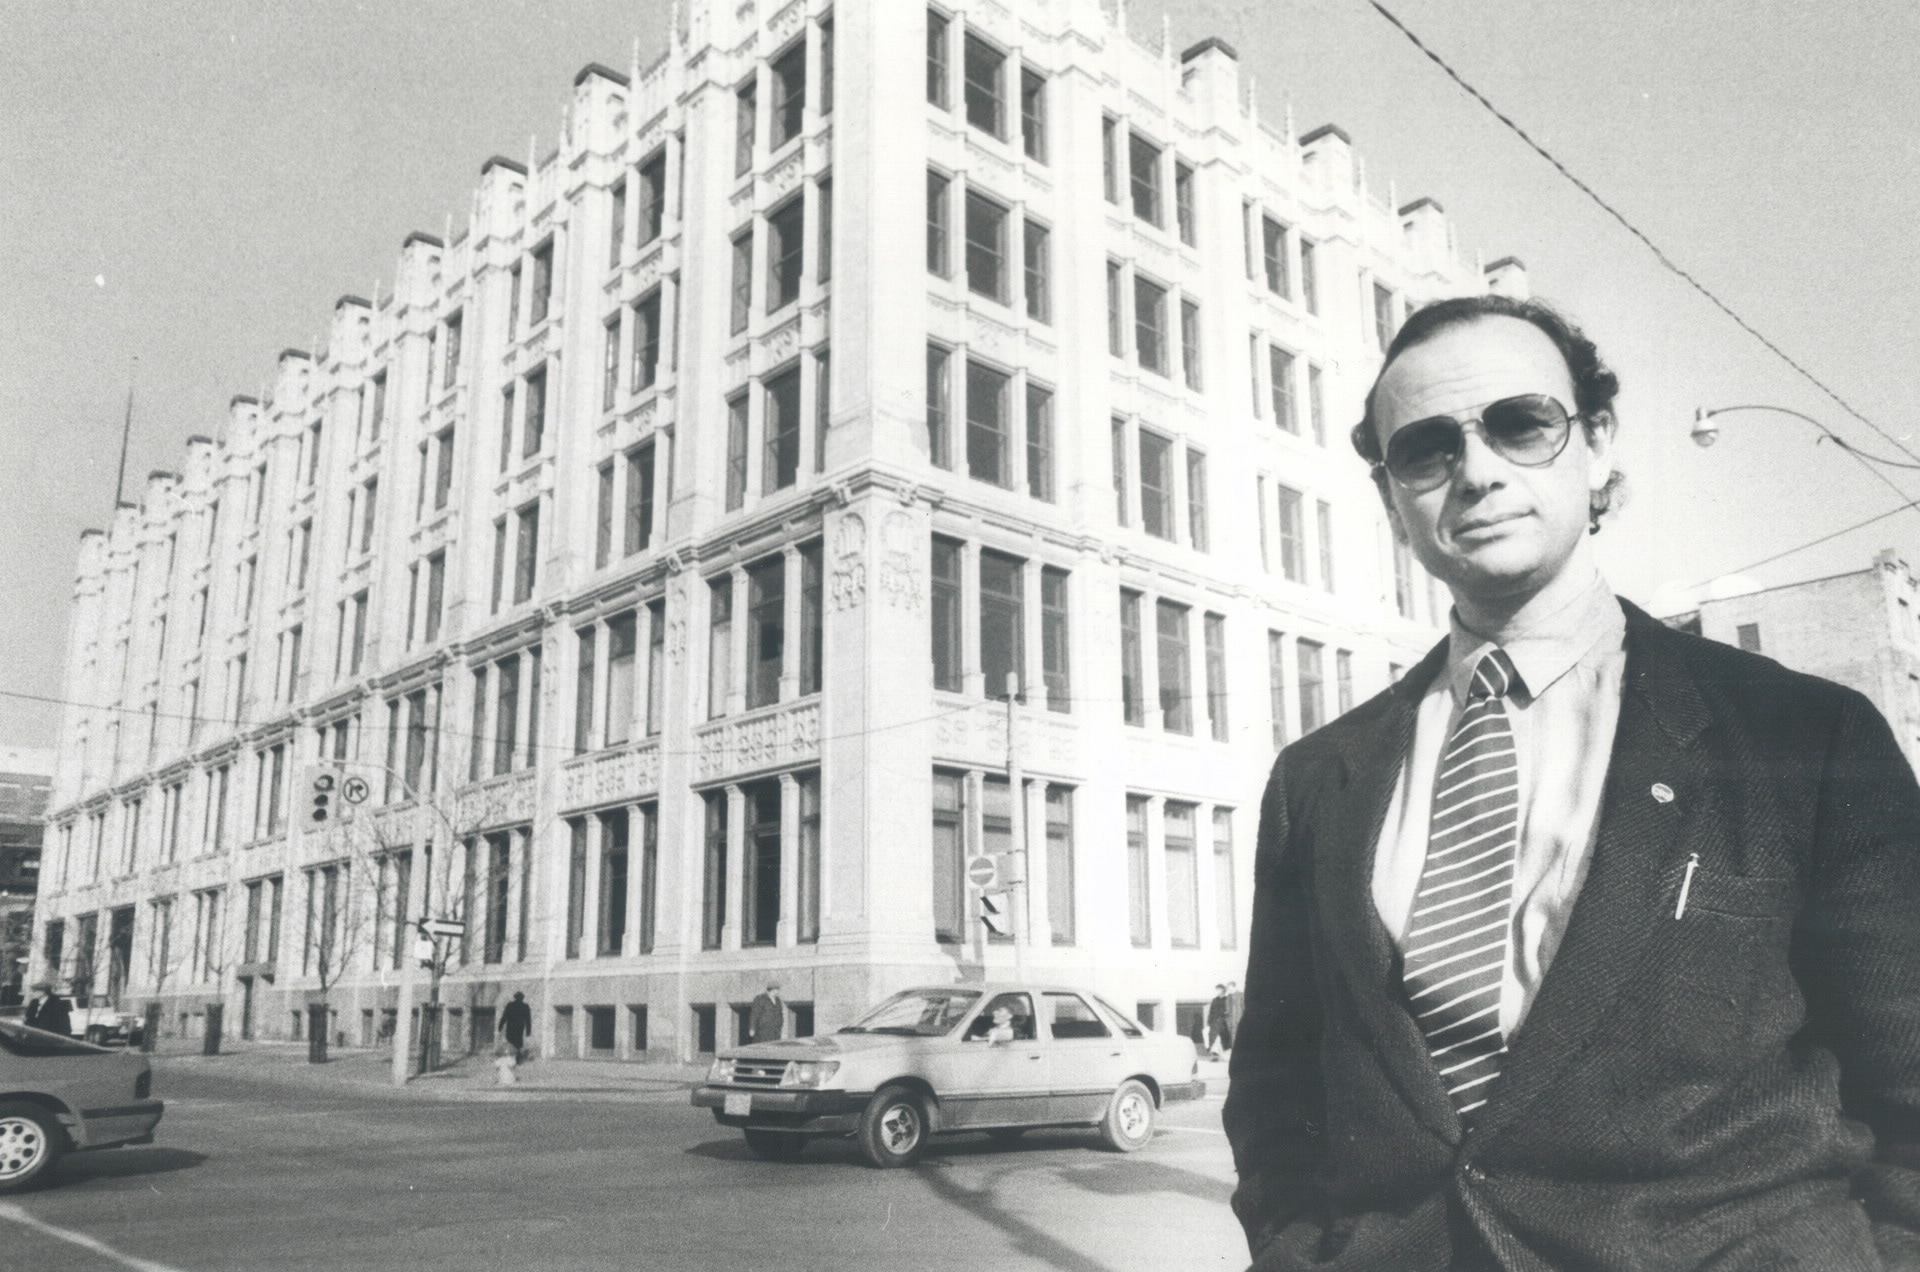 A man wearing sunglasses and a suit stands on a street corner. Across the street, an ornate 5-storey building is visible.